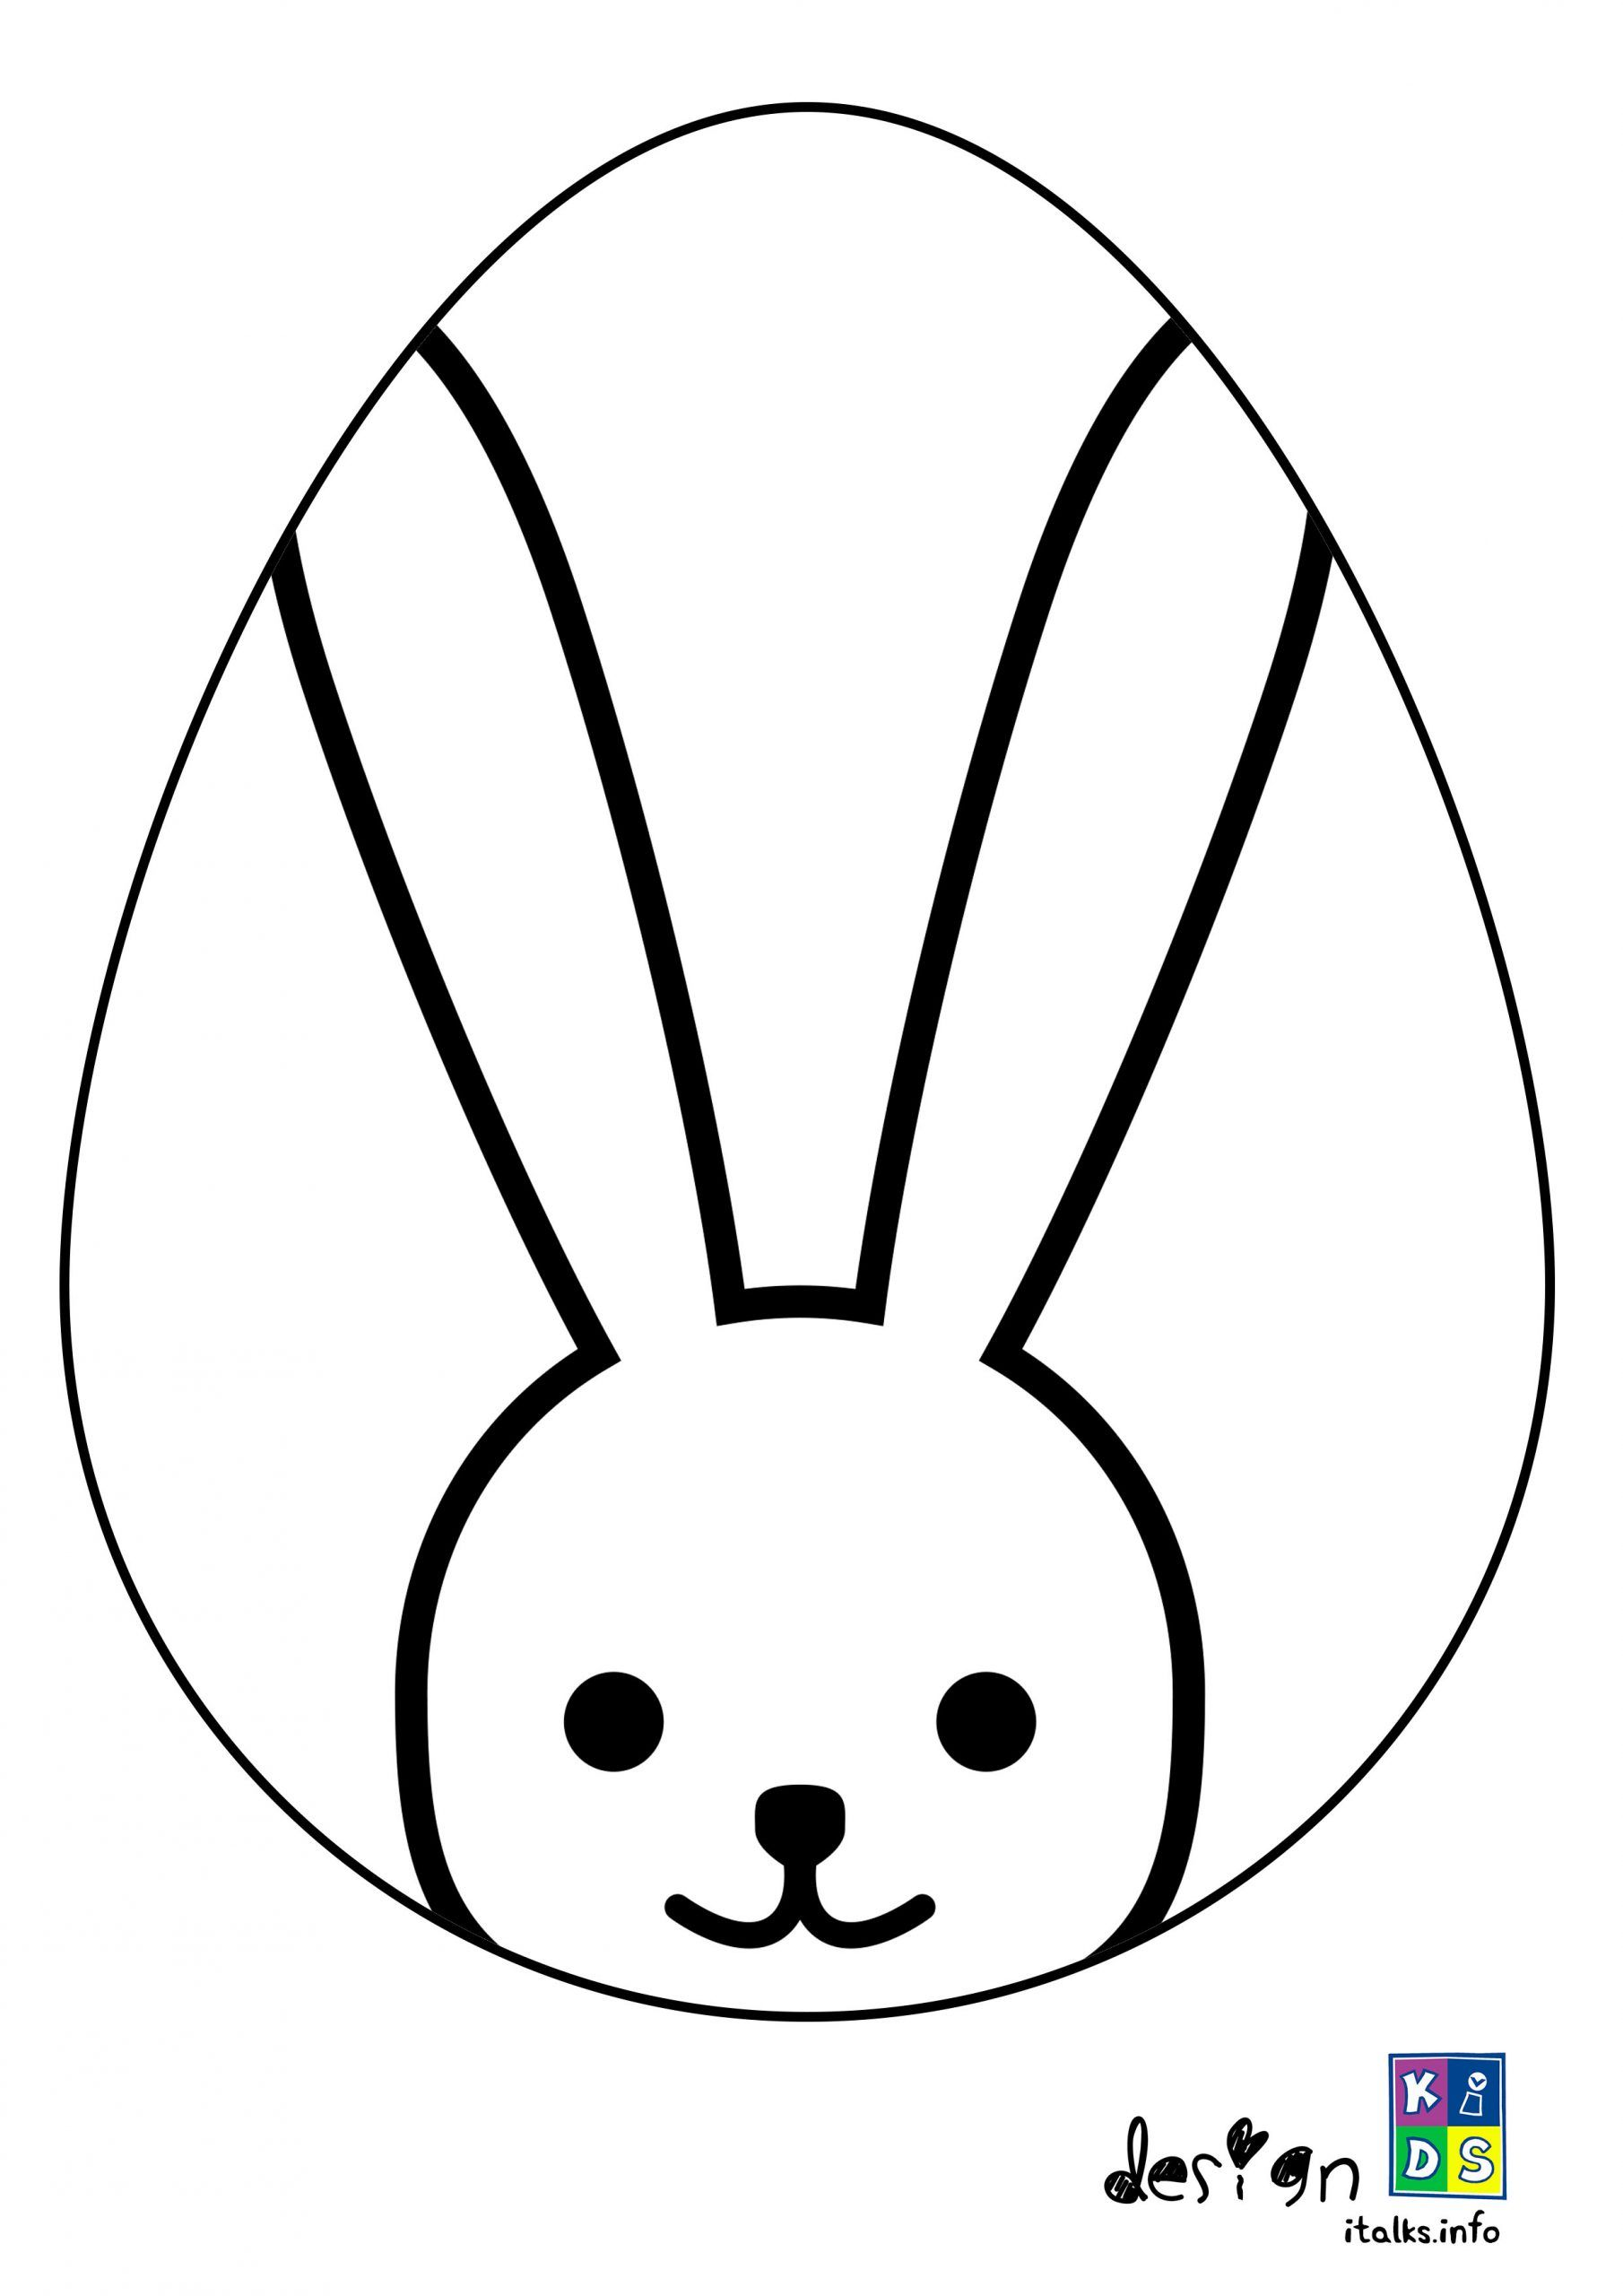 Pin By Sofia Ba On Pasxa Bunny Coloring Pages Coloring Pages Free Coloring Pages